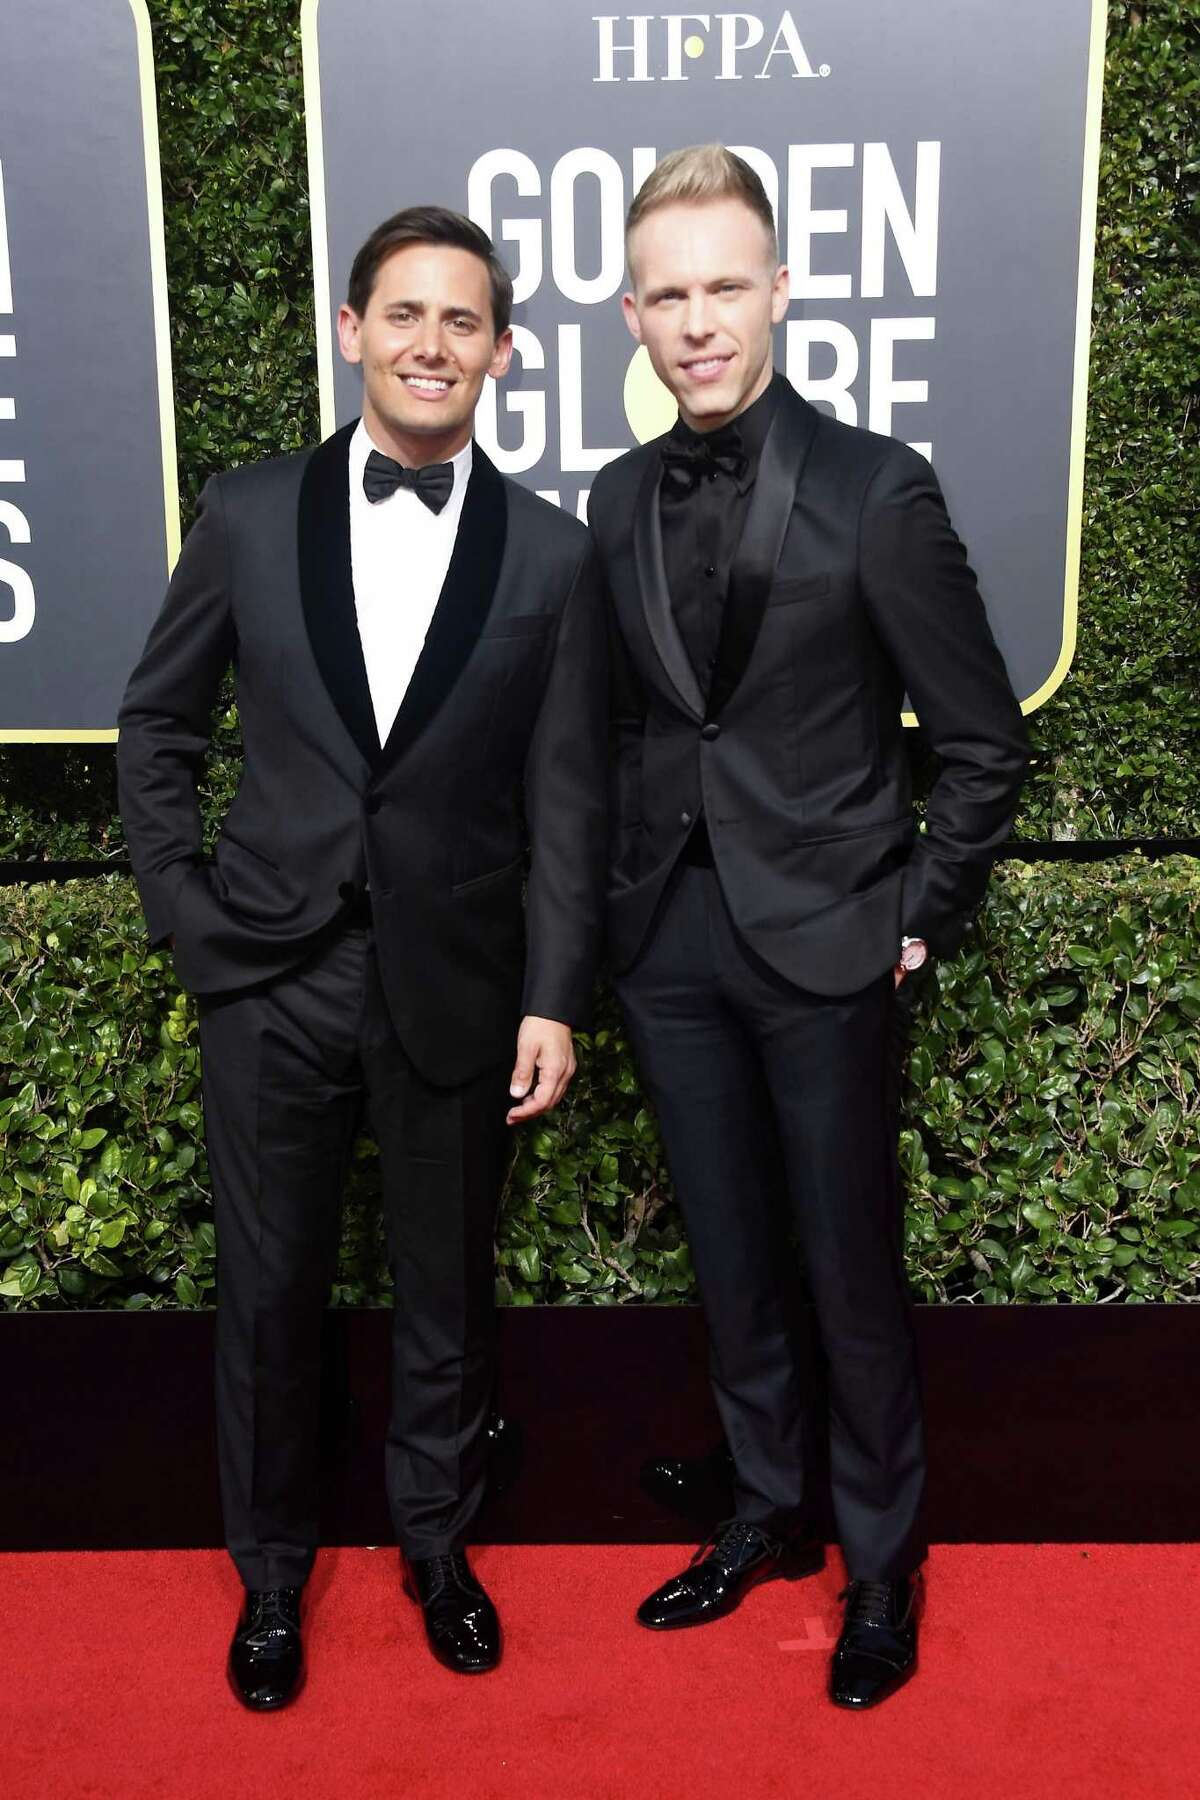 BEVERLY HILLS, CA - JANUARY 07: Benj Pasek and Justin Paul attend The 75th Annual Golden Globe Awards at The Beverly Hilton Hotel on January 7, 2018 in Beverly Hills, California. (Photo by Frazer Harrison/Getty Images)